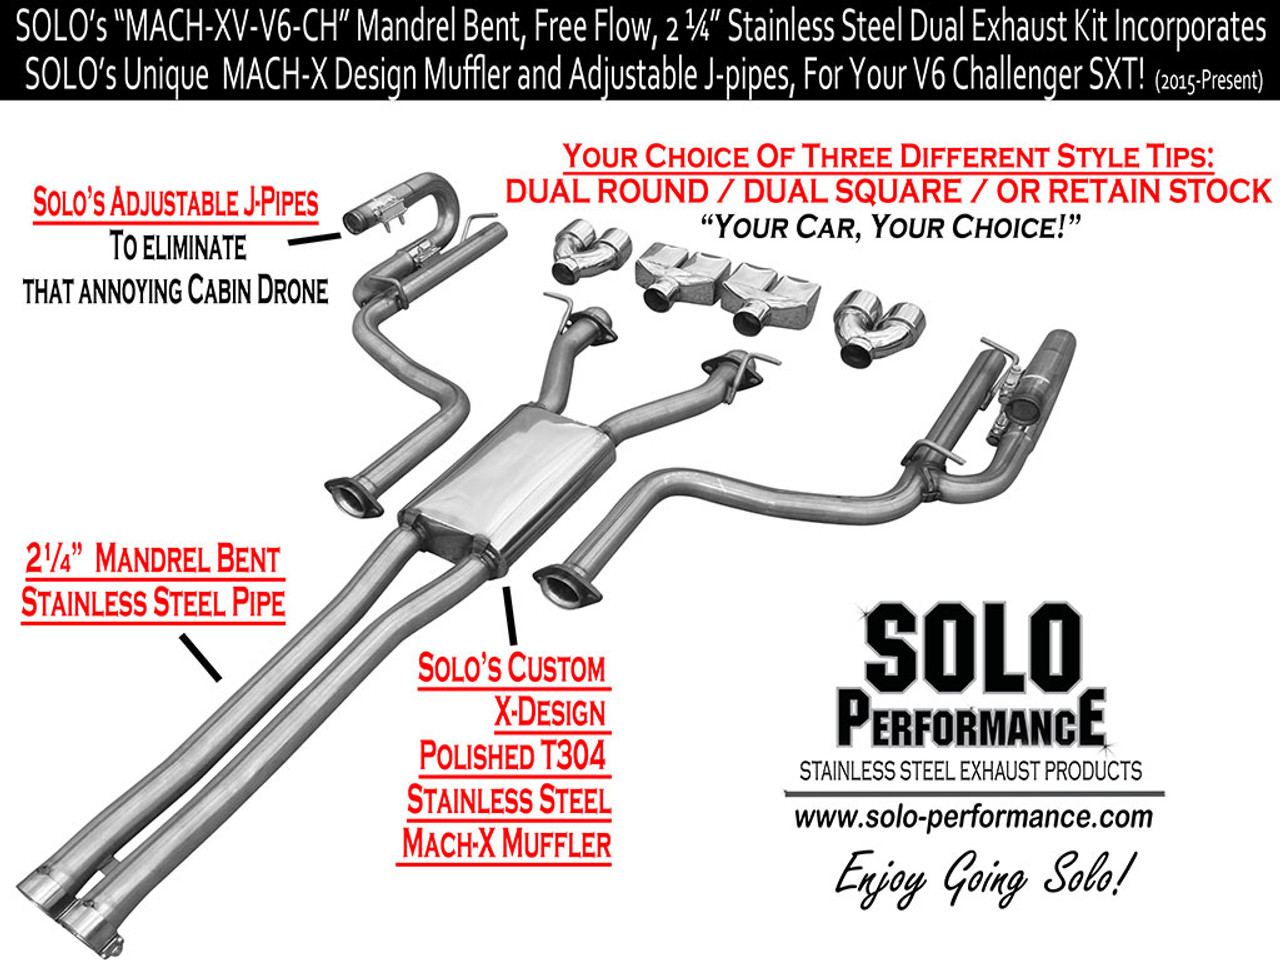 solo performance mach xv cat back exhaust square tips 2015 dodge challenger sxt v6 991162